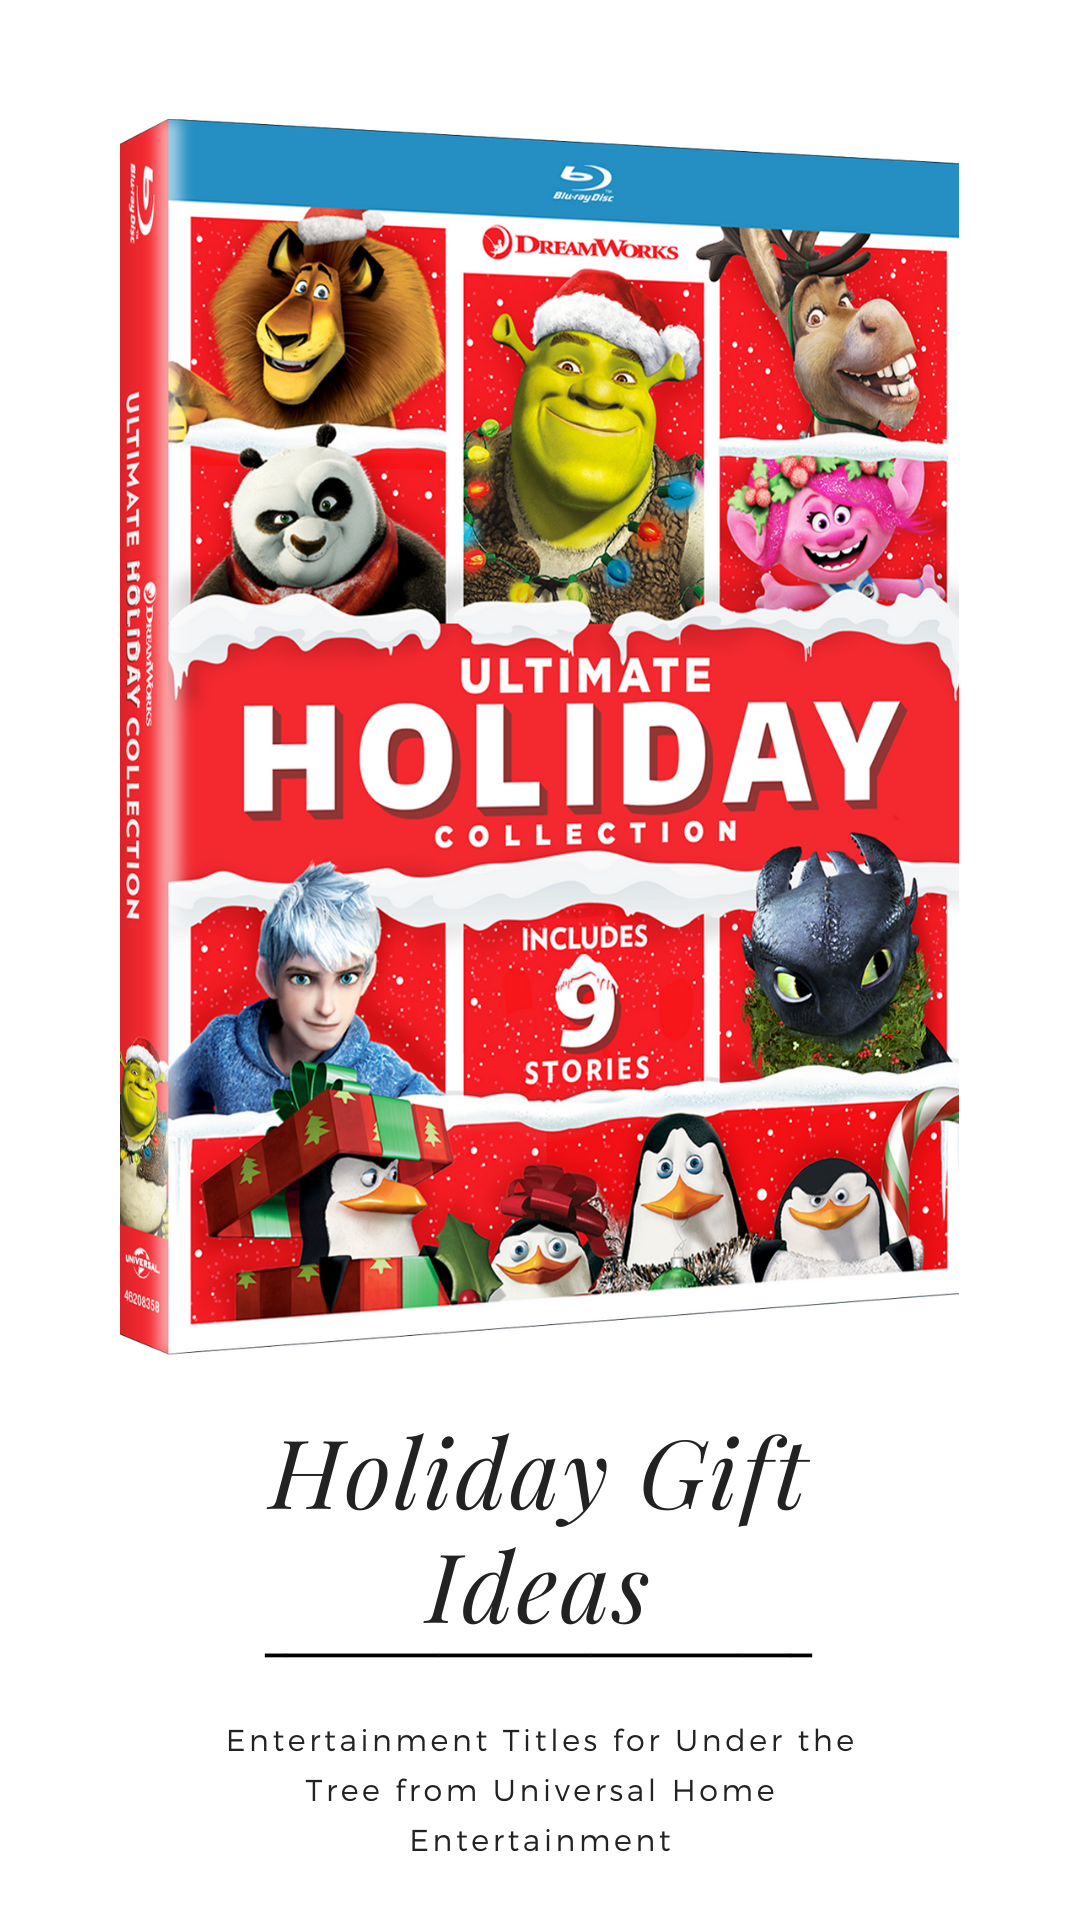 Entertainment Titles for Under the Tree from Universal Home Entertainment